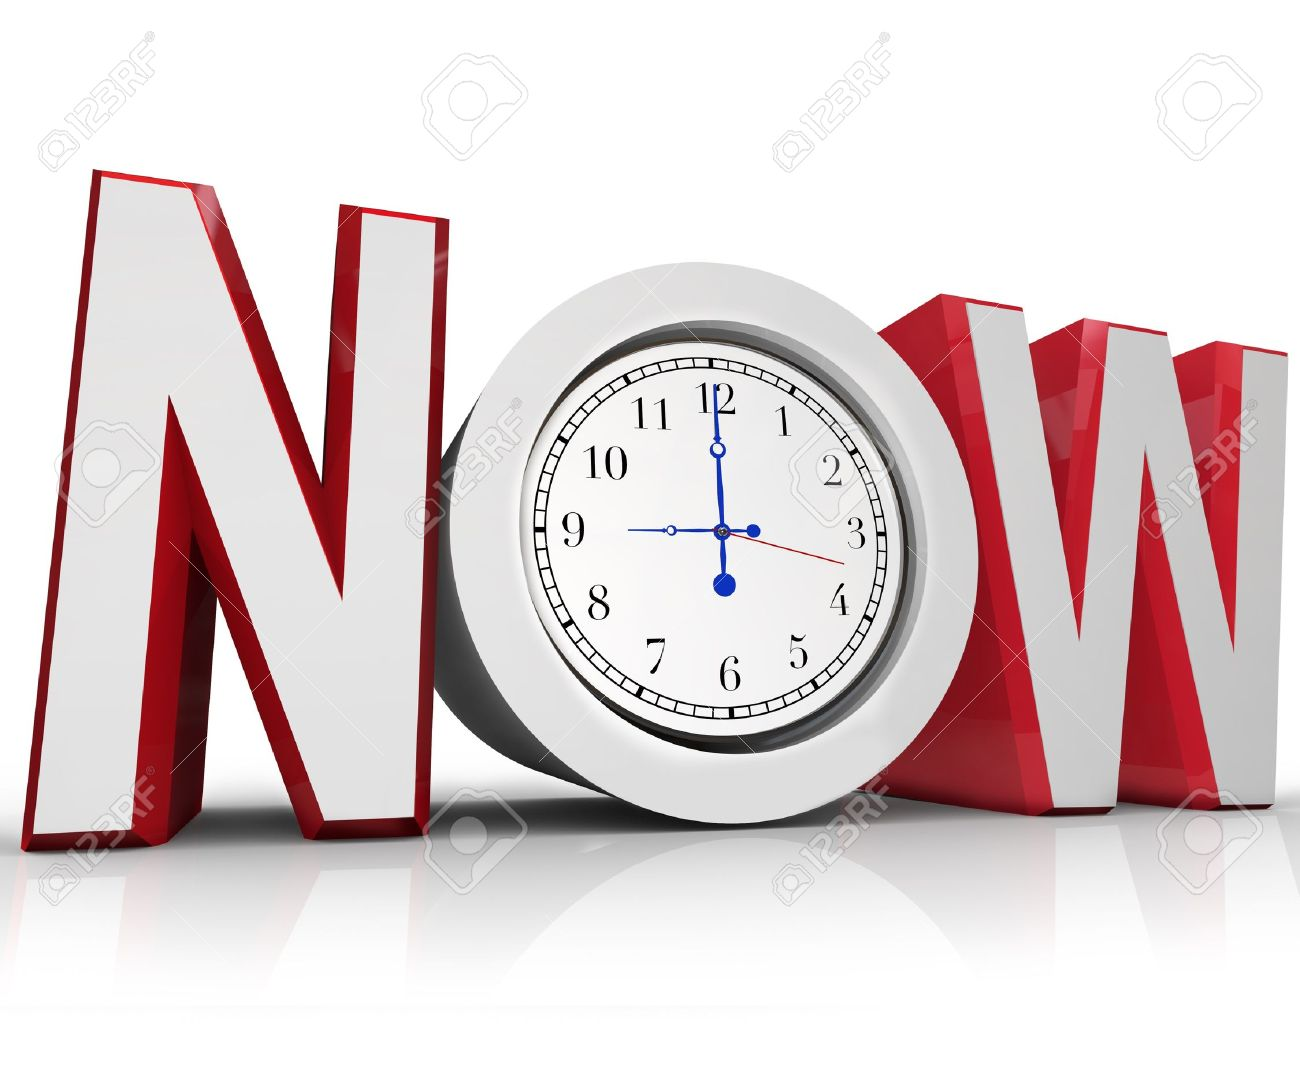 The word Now with a clock in the letter O representing an urgency or emergency and important need to beat a tight deadline Stock Photo - 10530559